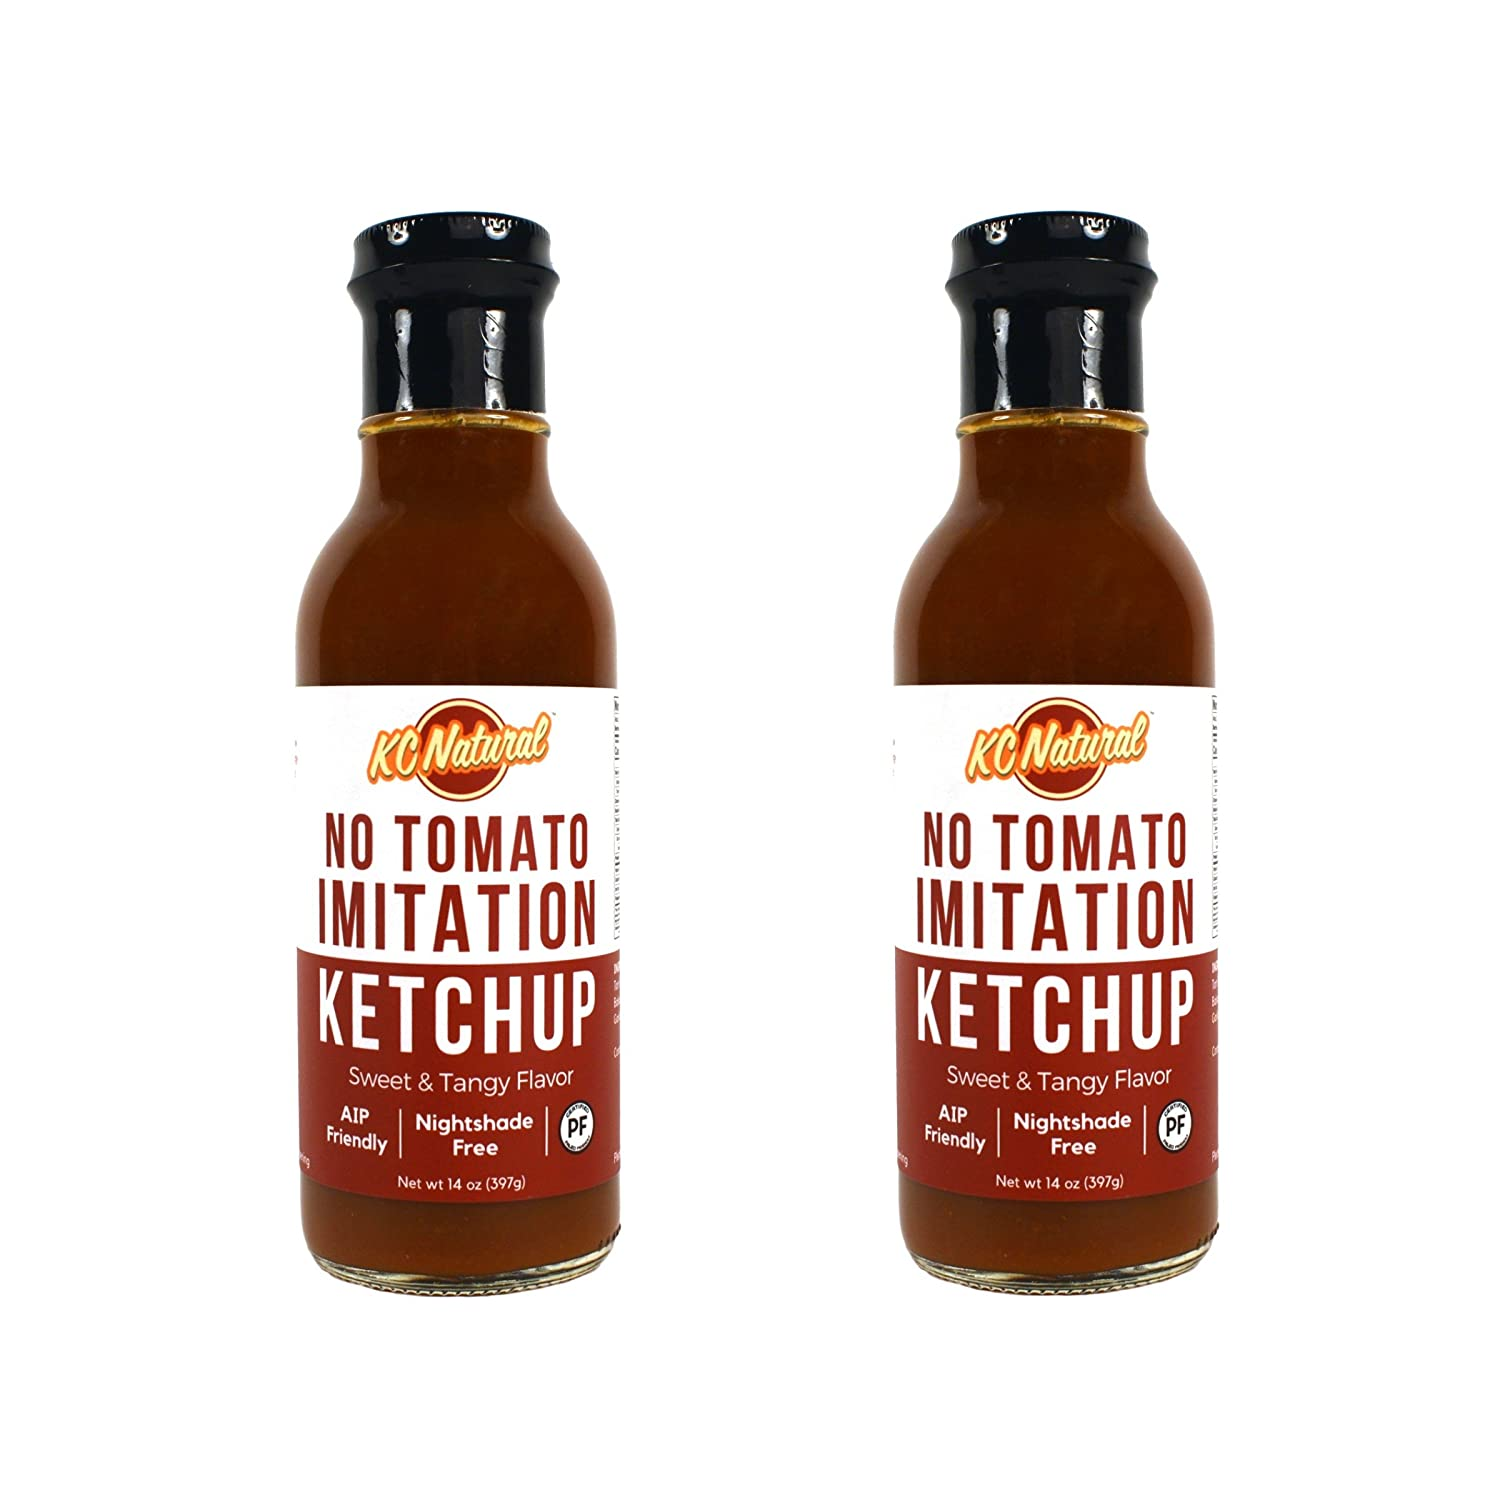 da97b987be72a5 Amazon.com : KC Natural - Paleo AIP Barbecue Sauce 14 oz, Combo Pack  (Mastodon and Primal Cherry) : Grocery & Gourmet Food